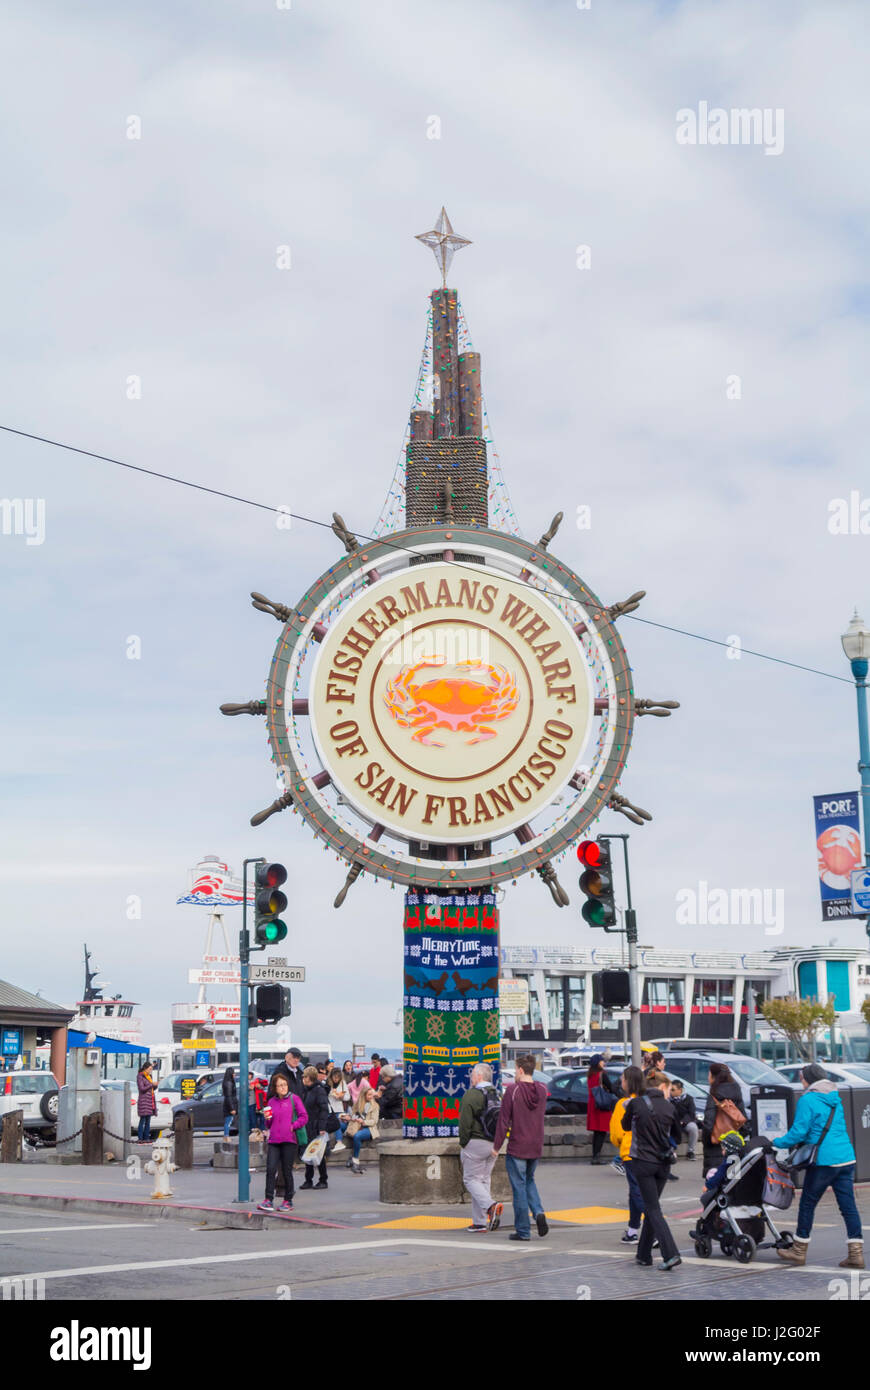 San Francisco, Kalifornien, Vereinigte Staaten von Amerika, Nordamerika, Fisherman's Wharf District Stockbild